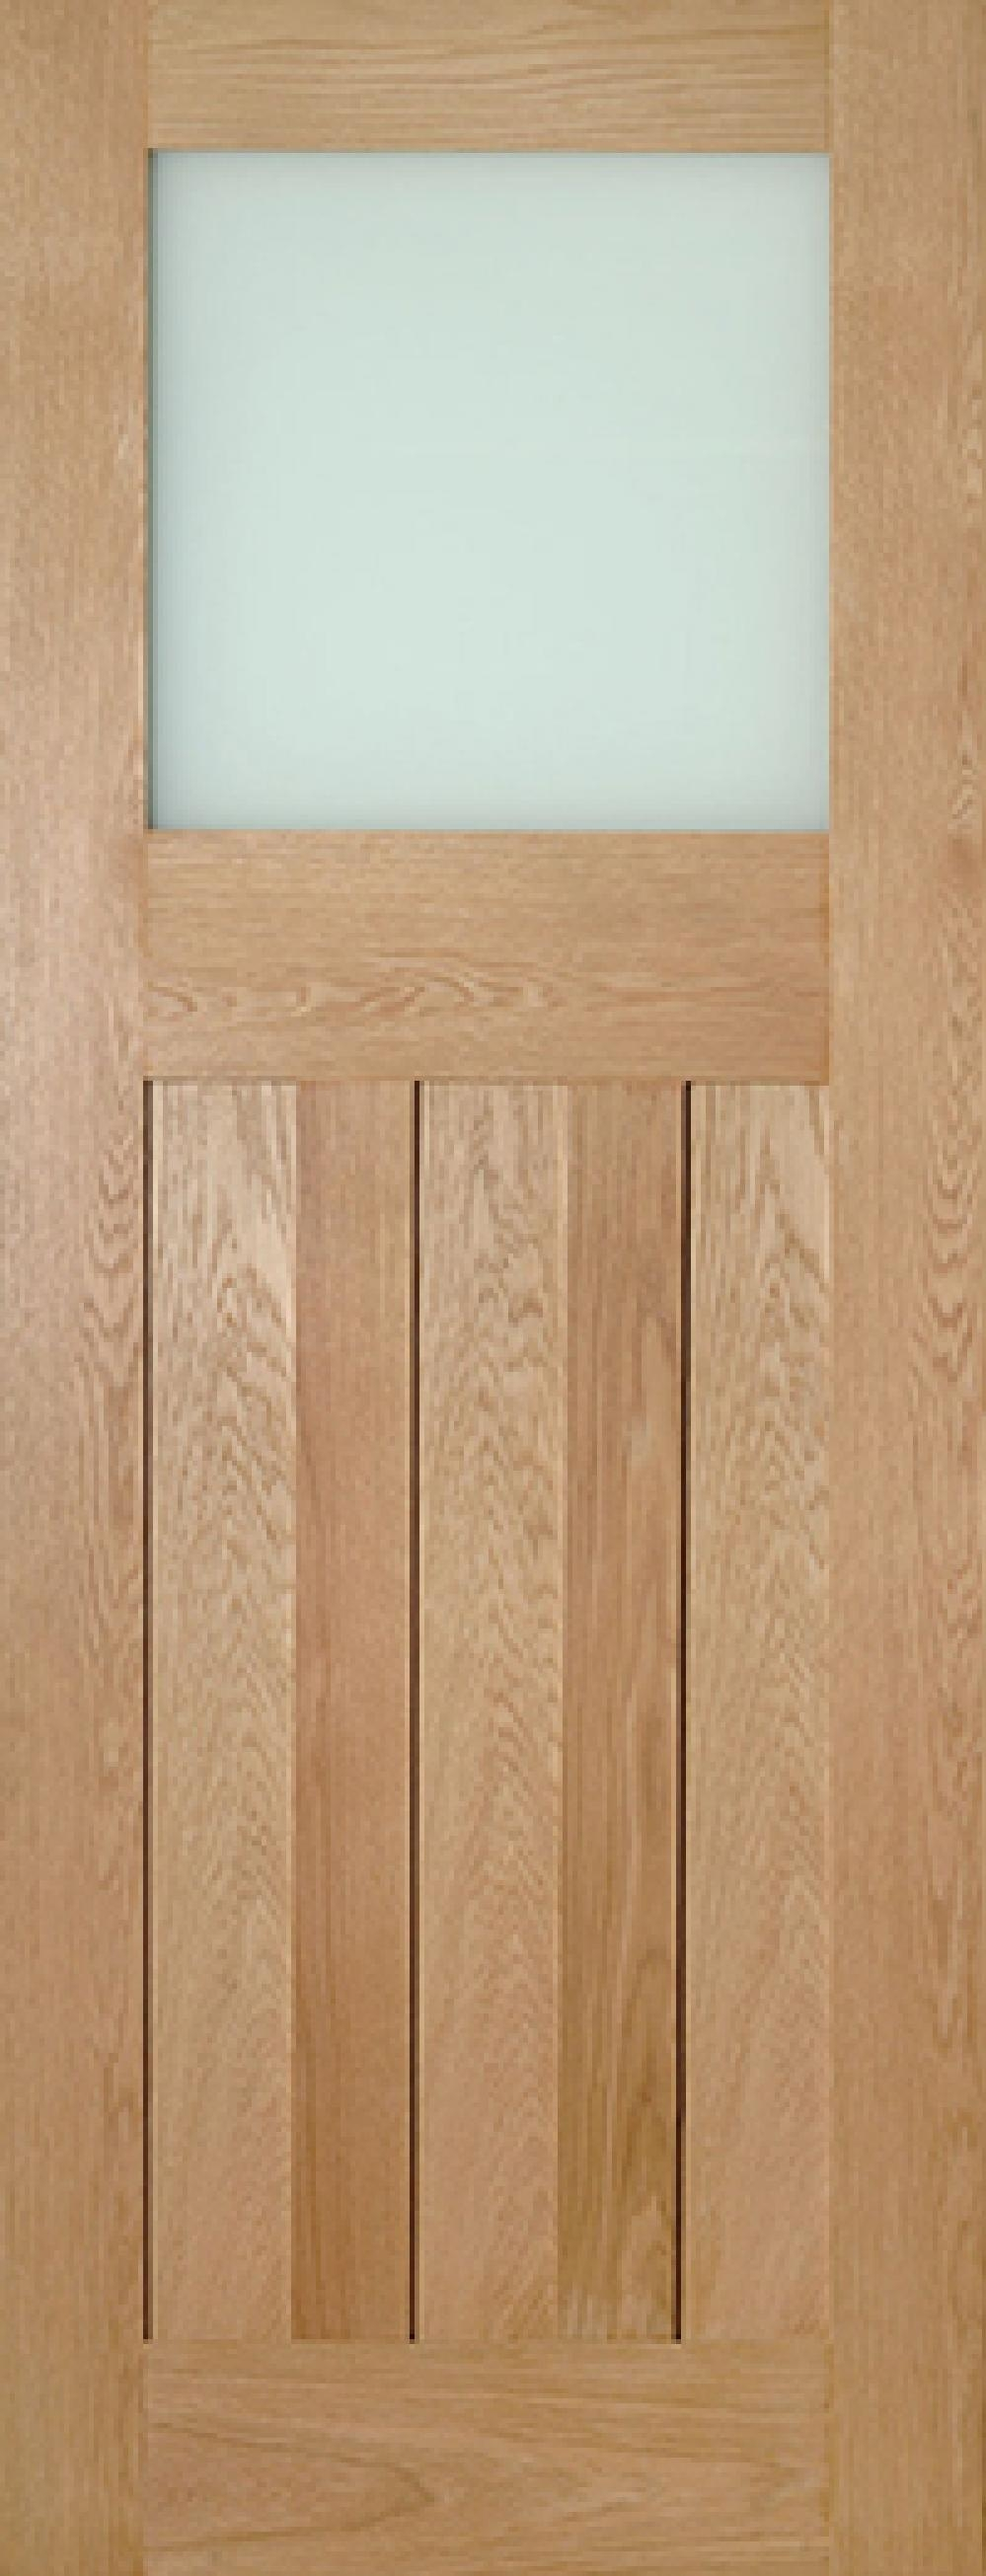 Cambridge Glazed Oak - Frosted Glass:  Image